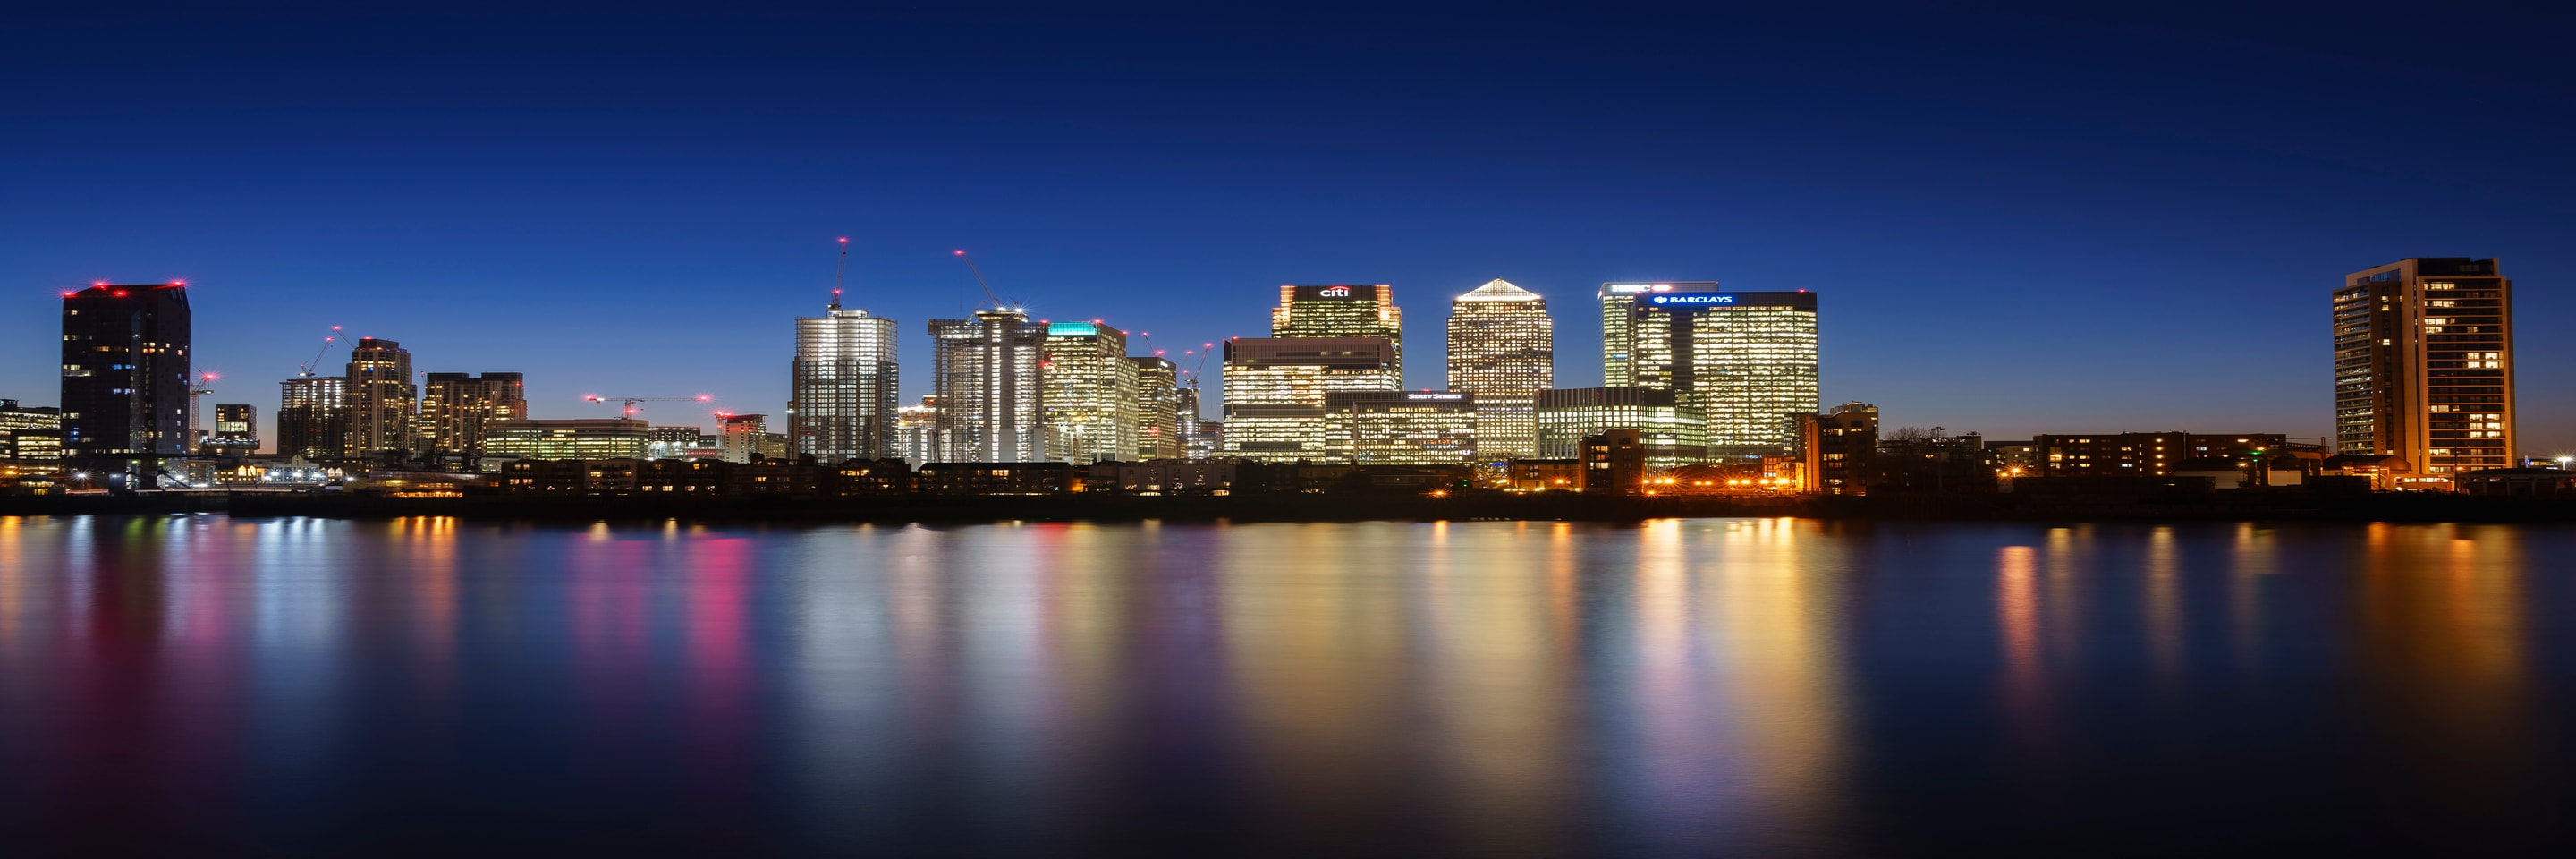 East London skyline at night, reflected in the River Thames.